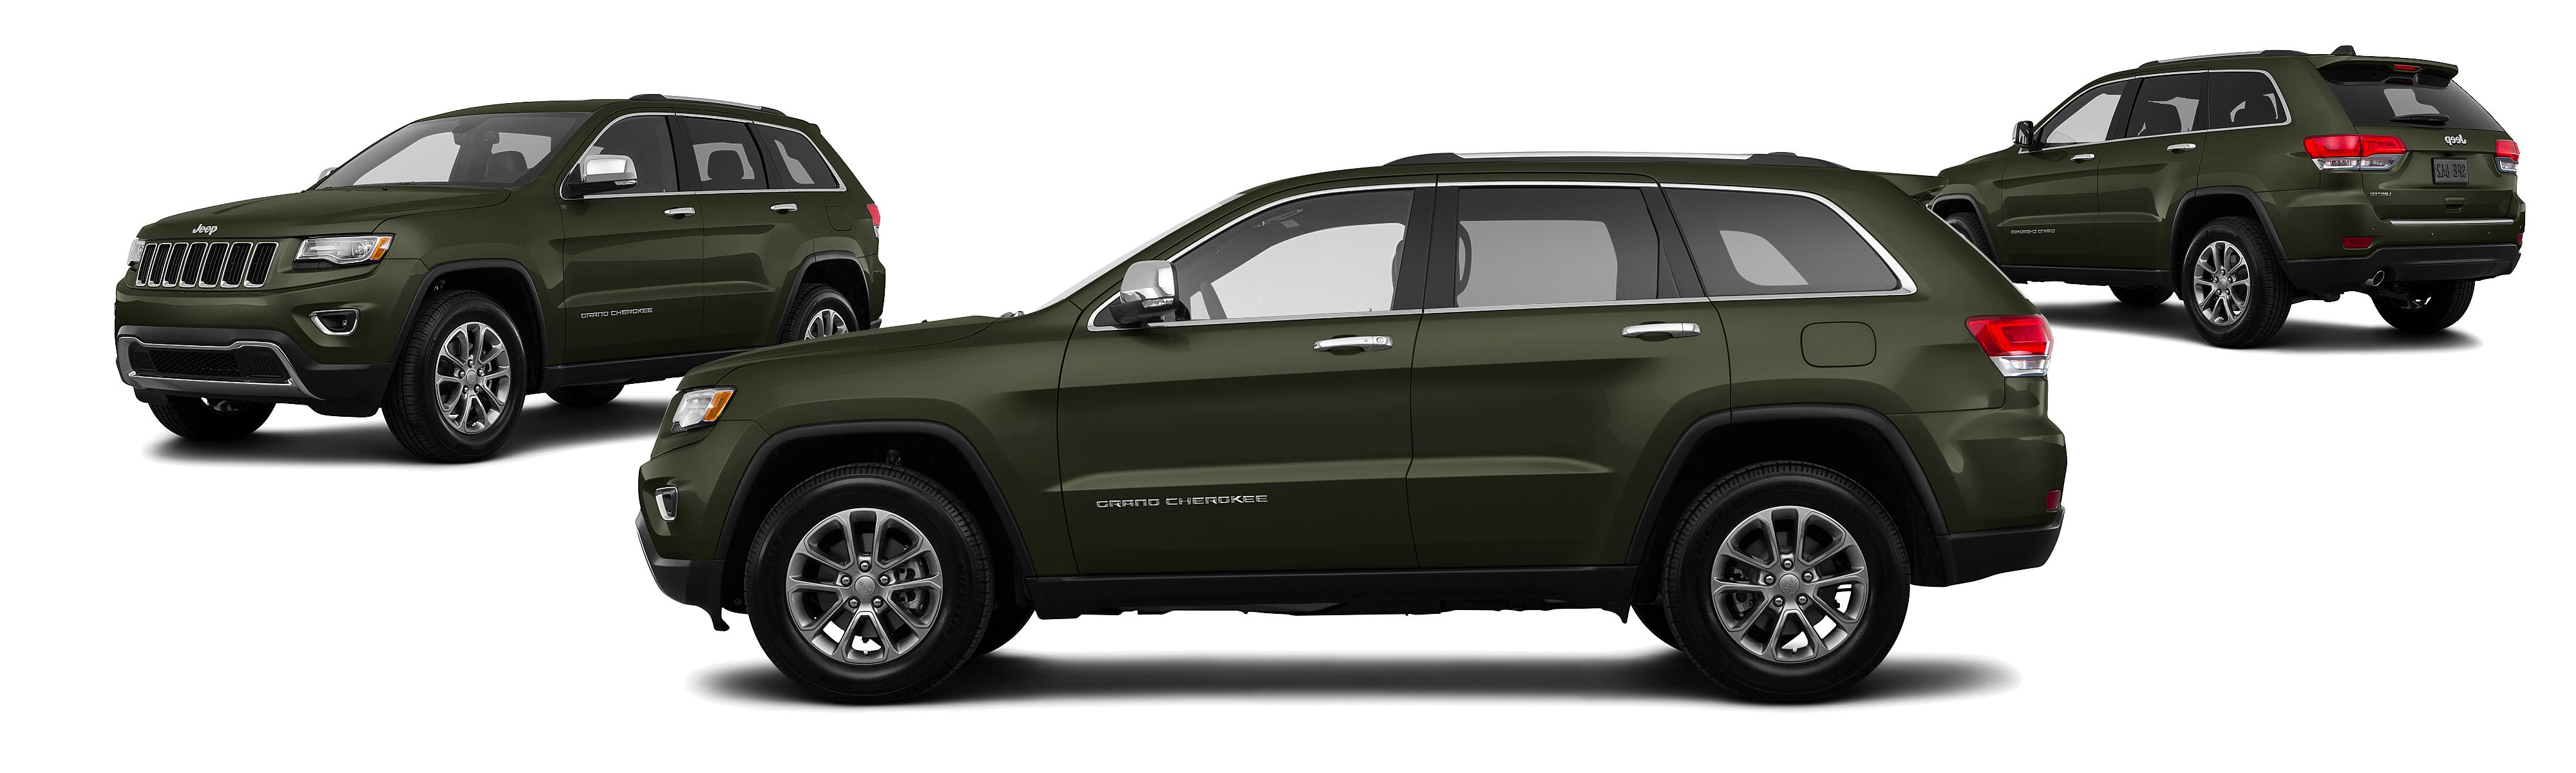 2016 Jeep Grand Cherokee 4x2 Overland 4dr Suv Research Groovecar